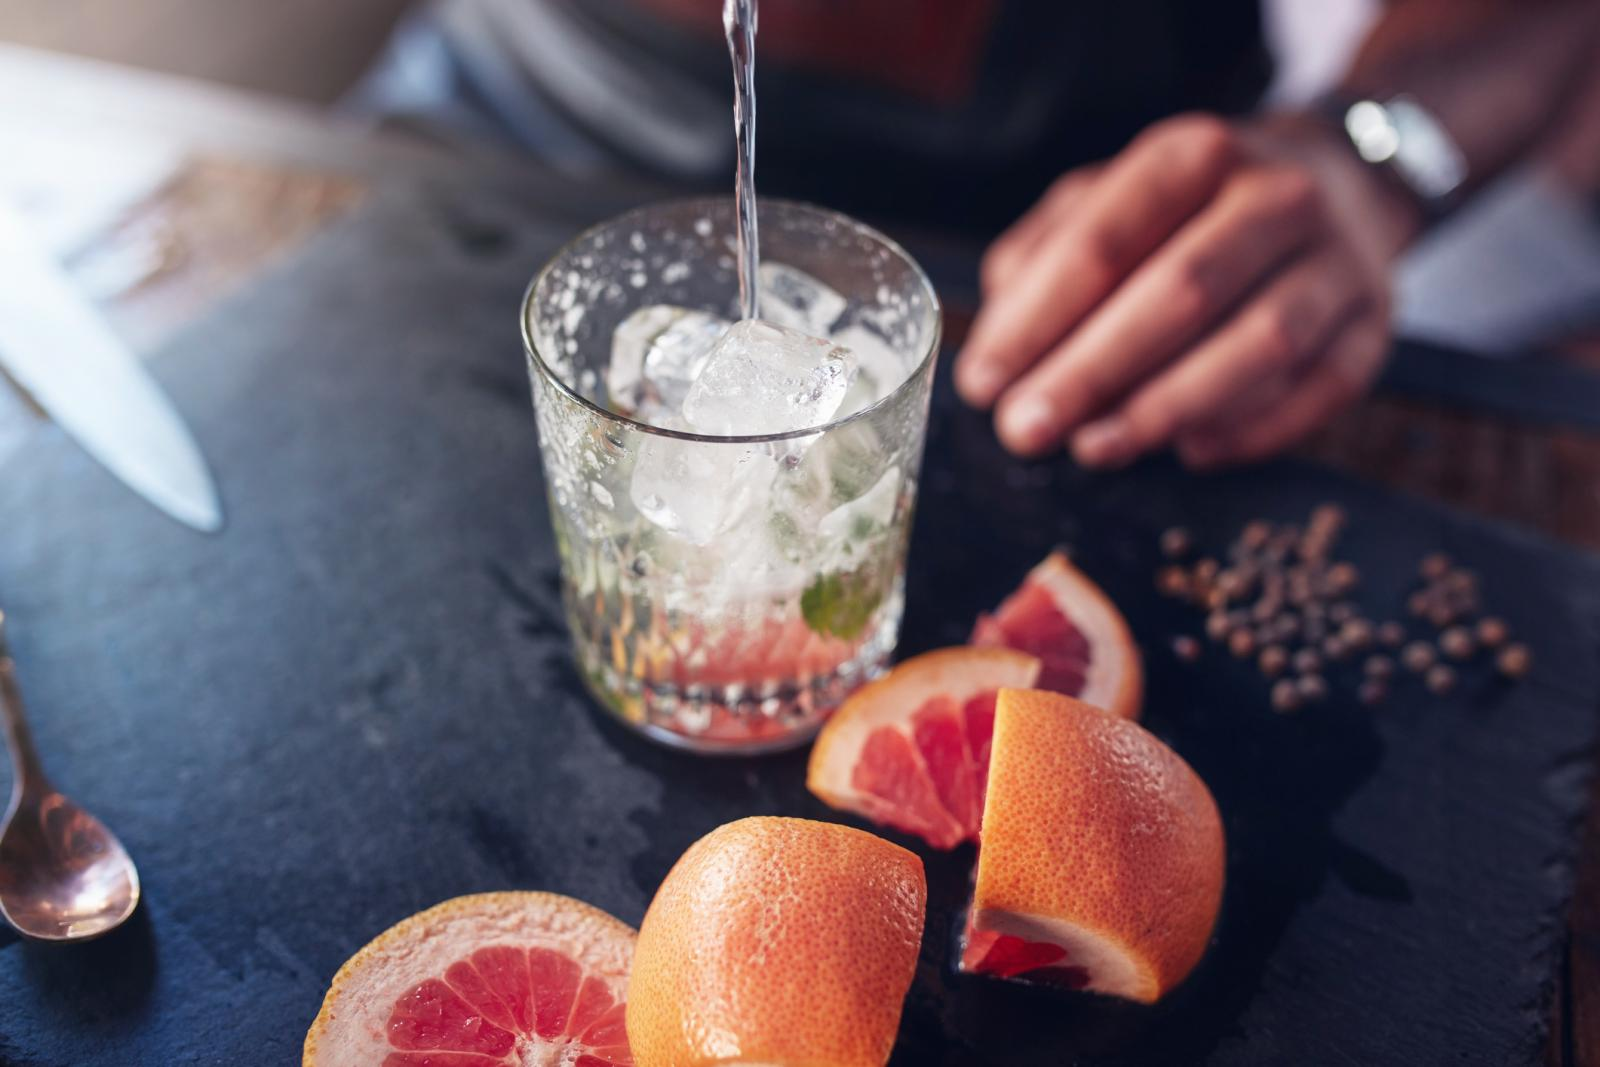 Bartender preparing grapefruit cocktail